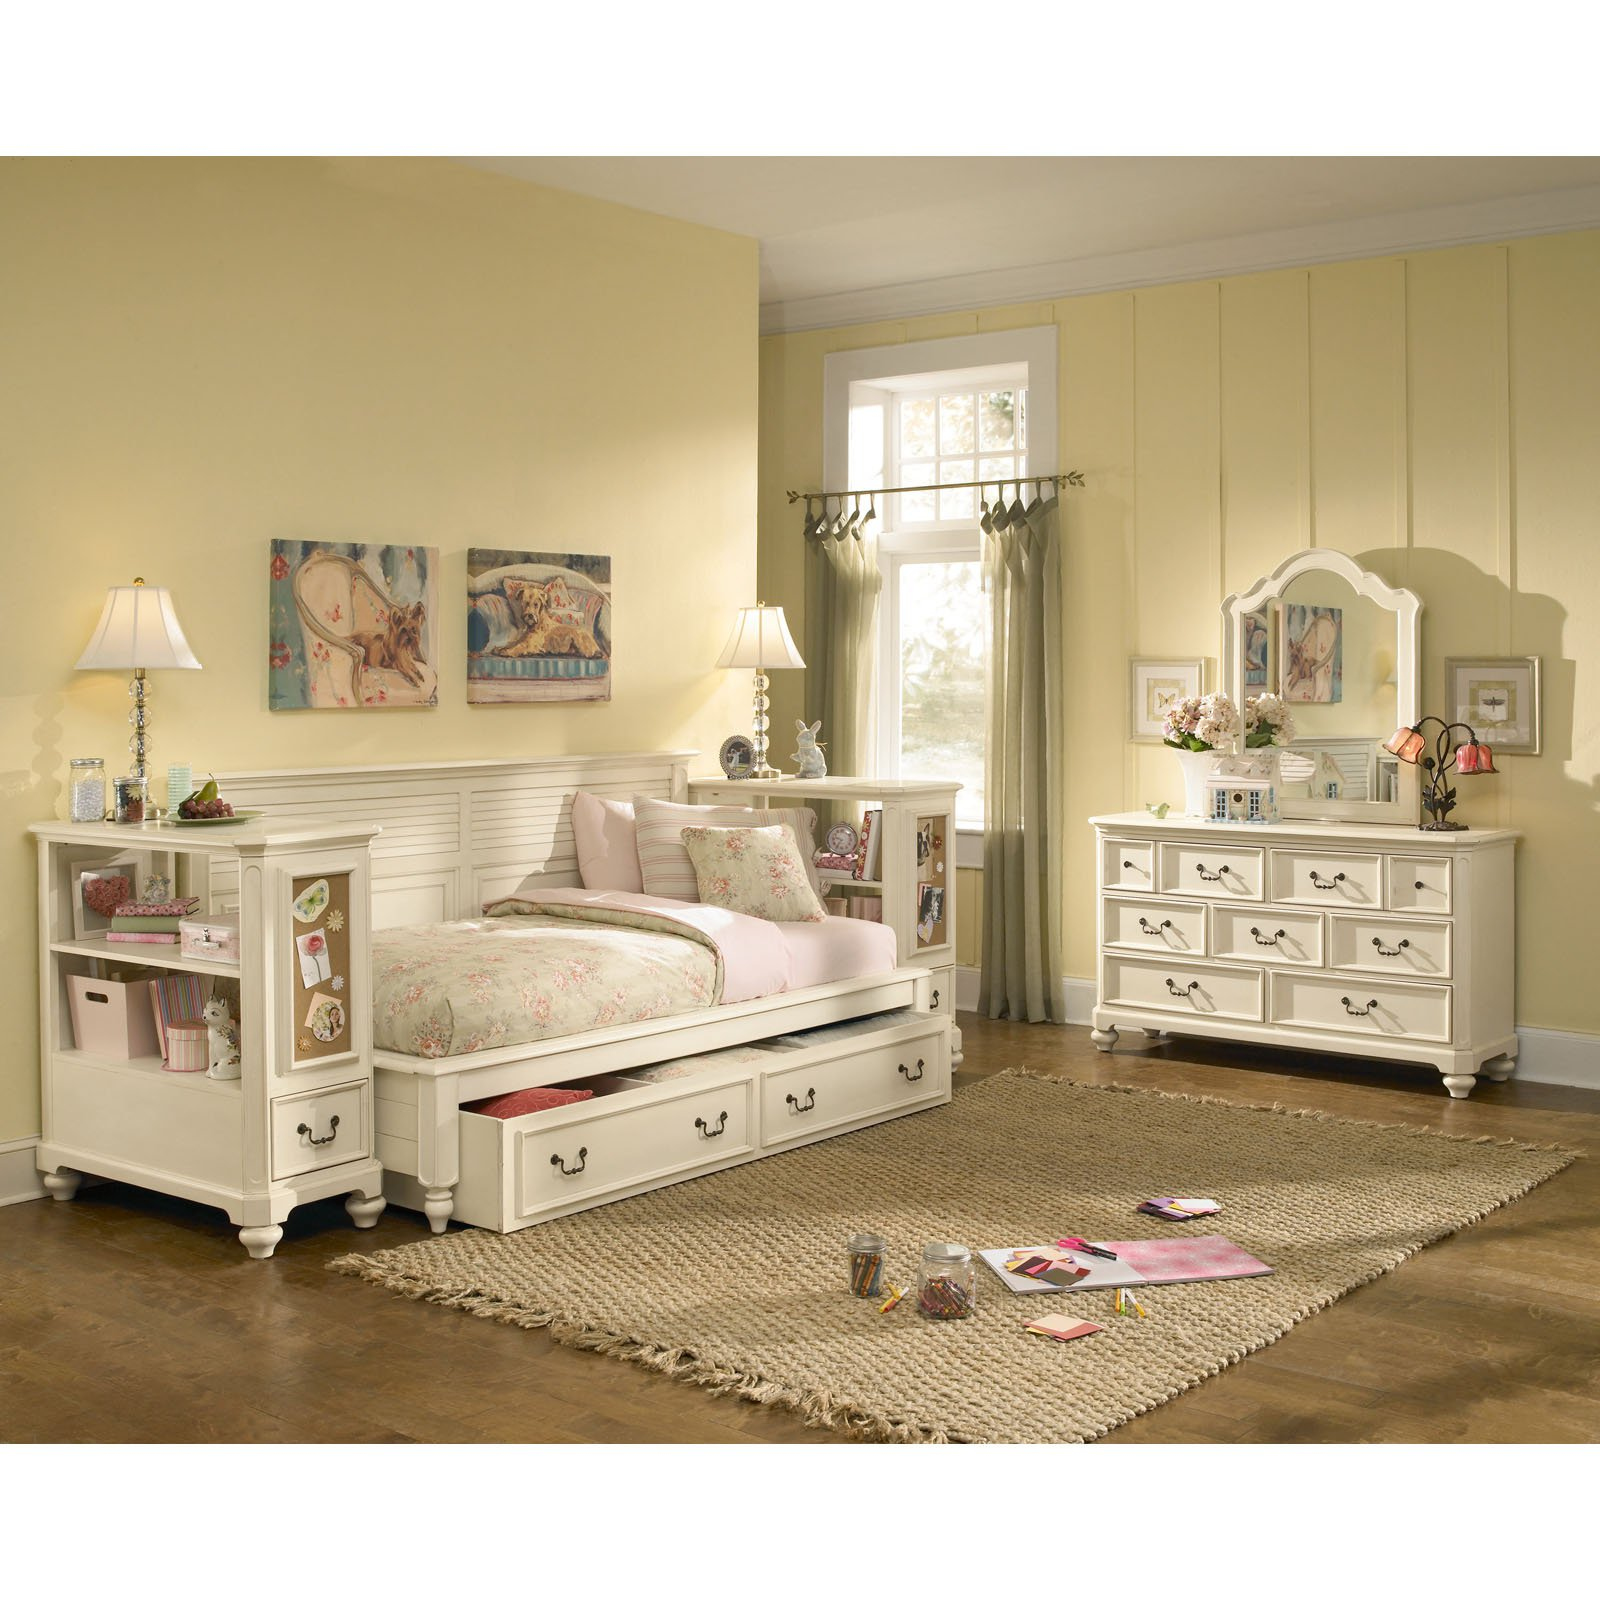 Big Lots Daybed Royals Courage Multifunctional Daybed With Storage